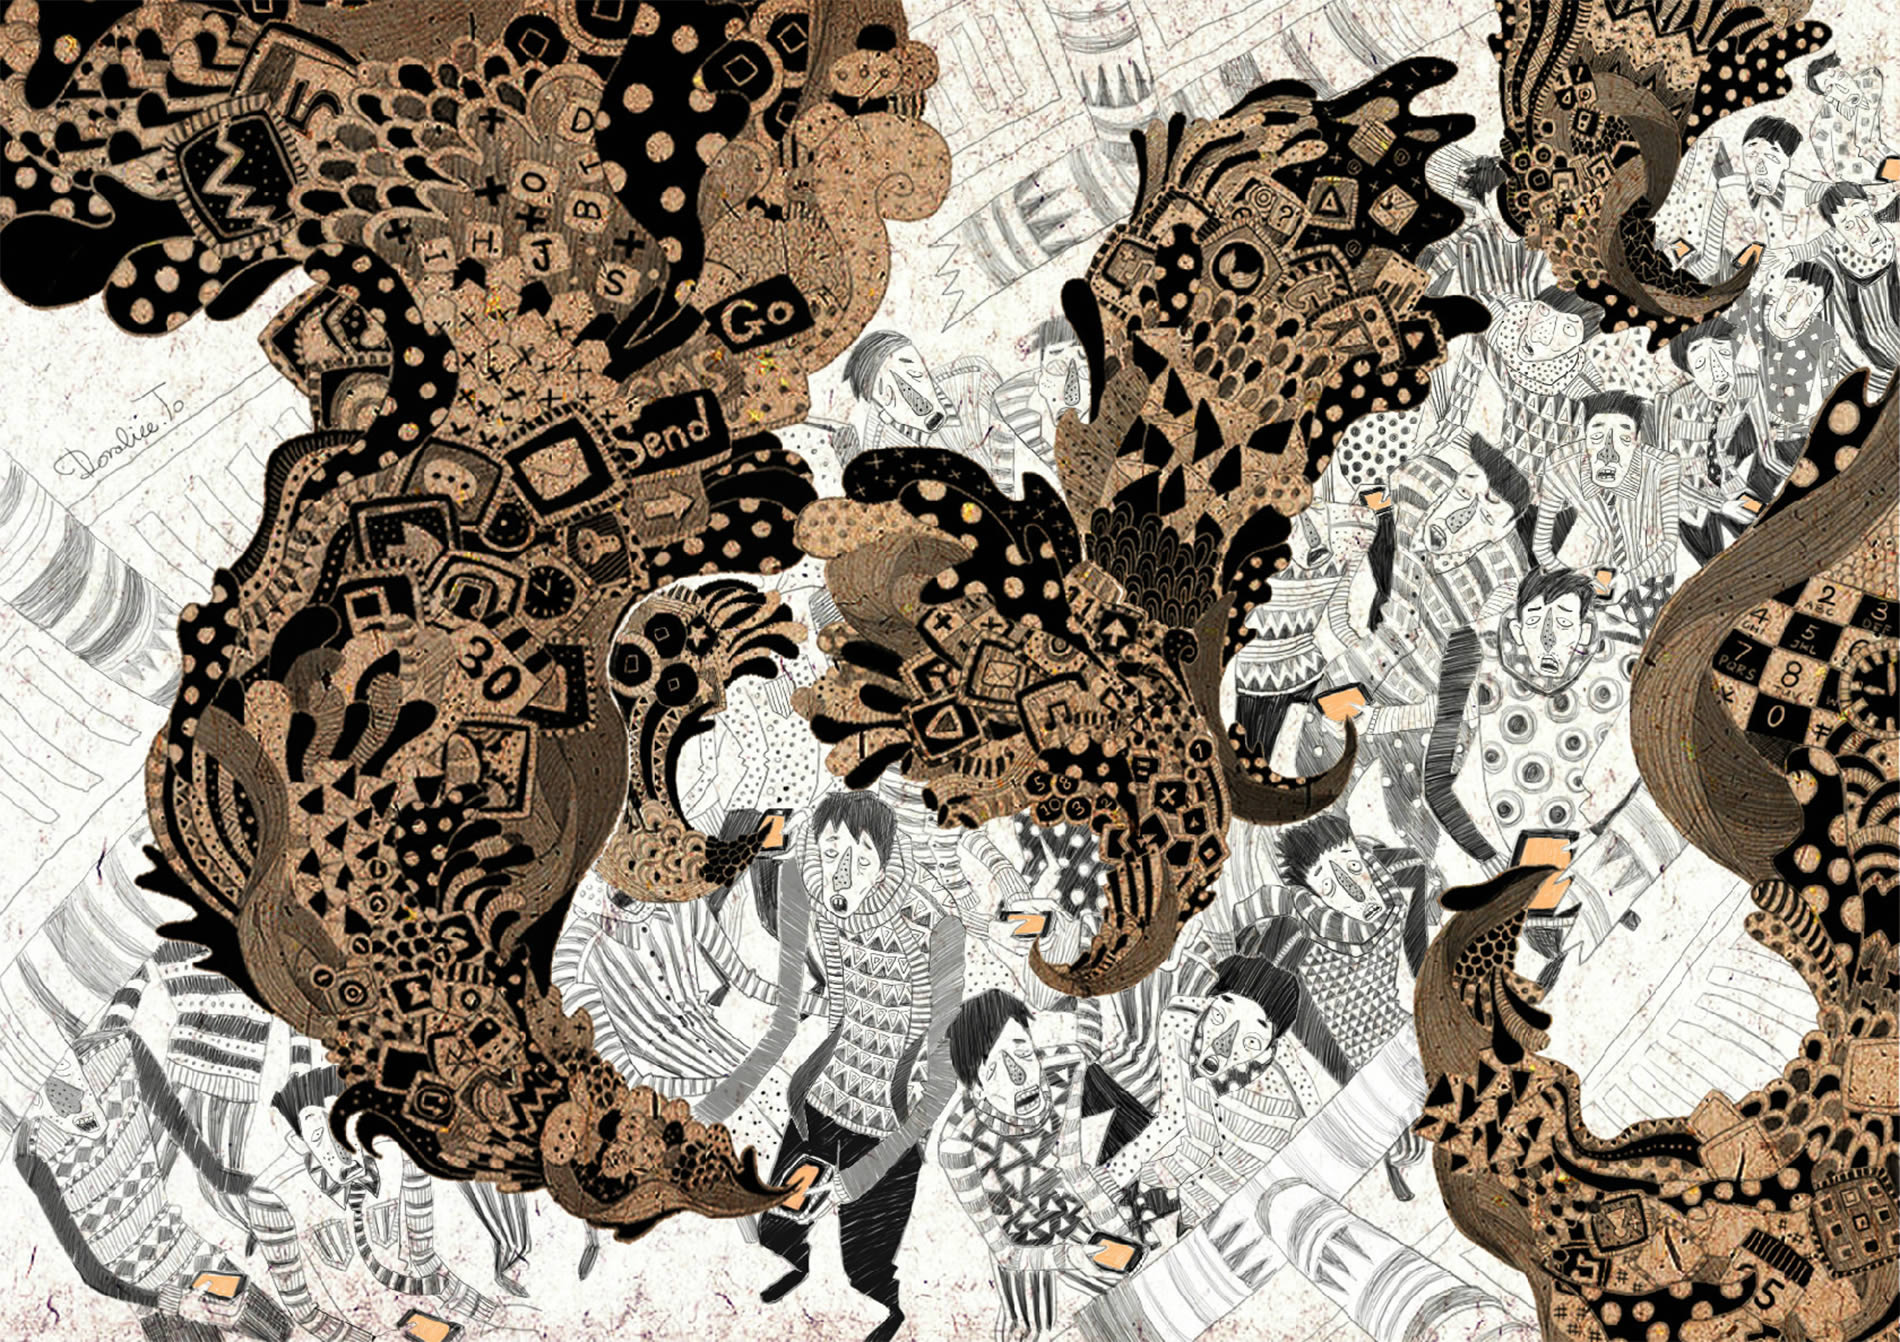 elaborate patterns; an illustration by yukai du